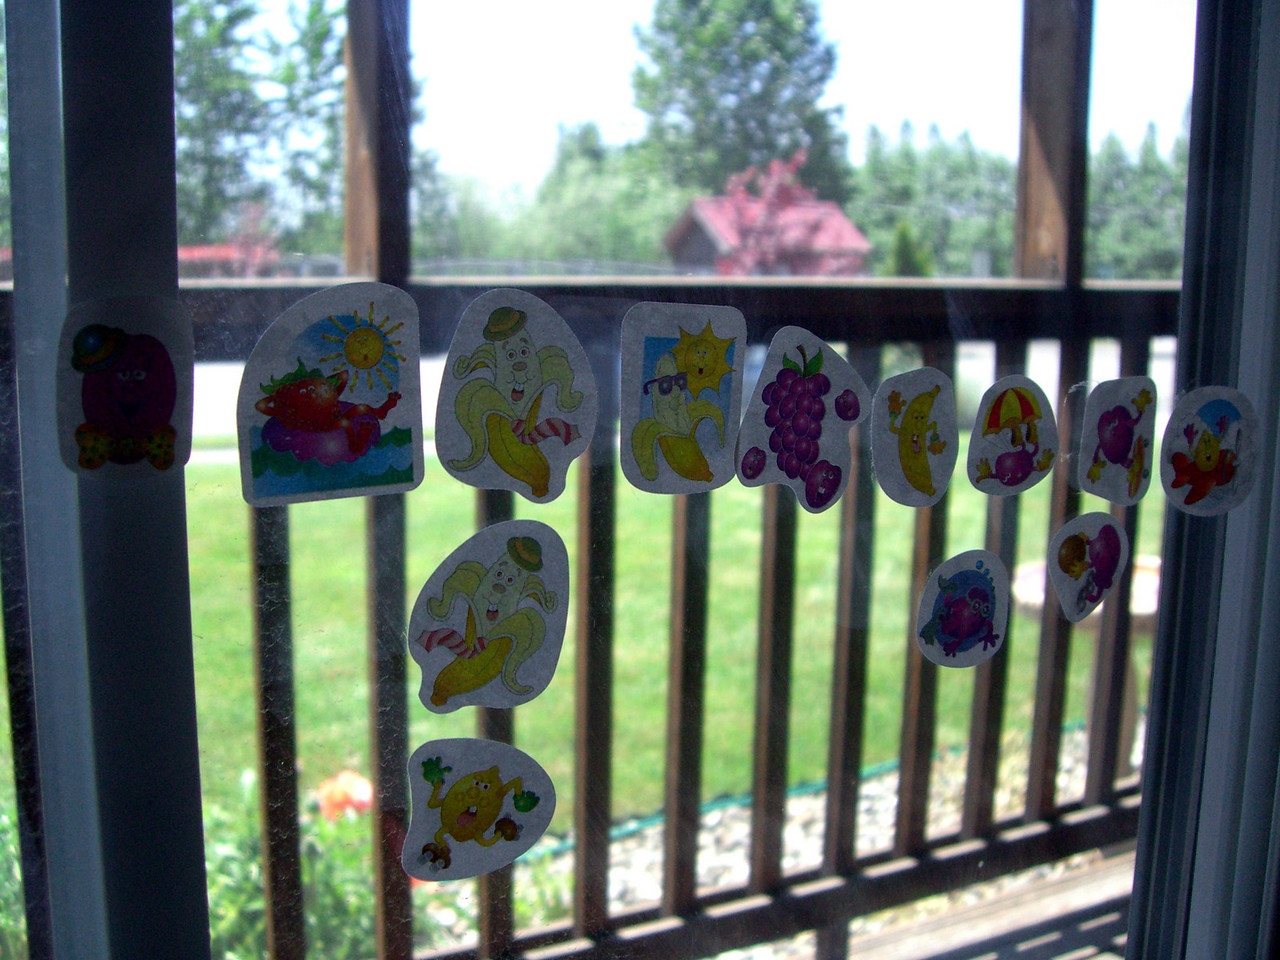 This is what happens when you give a 4 year old stickers and no warnings about where to use them. :)